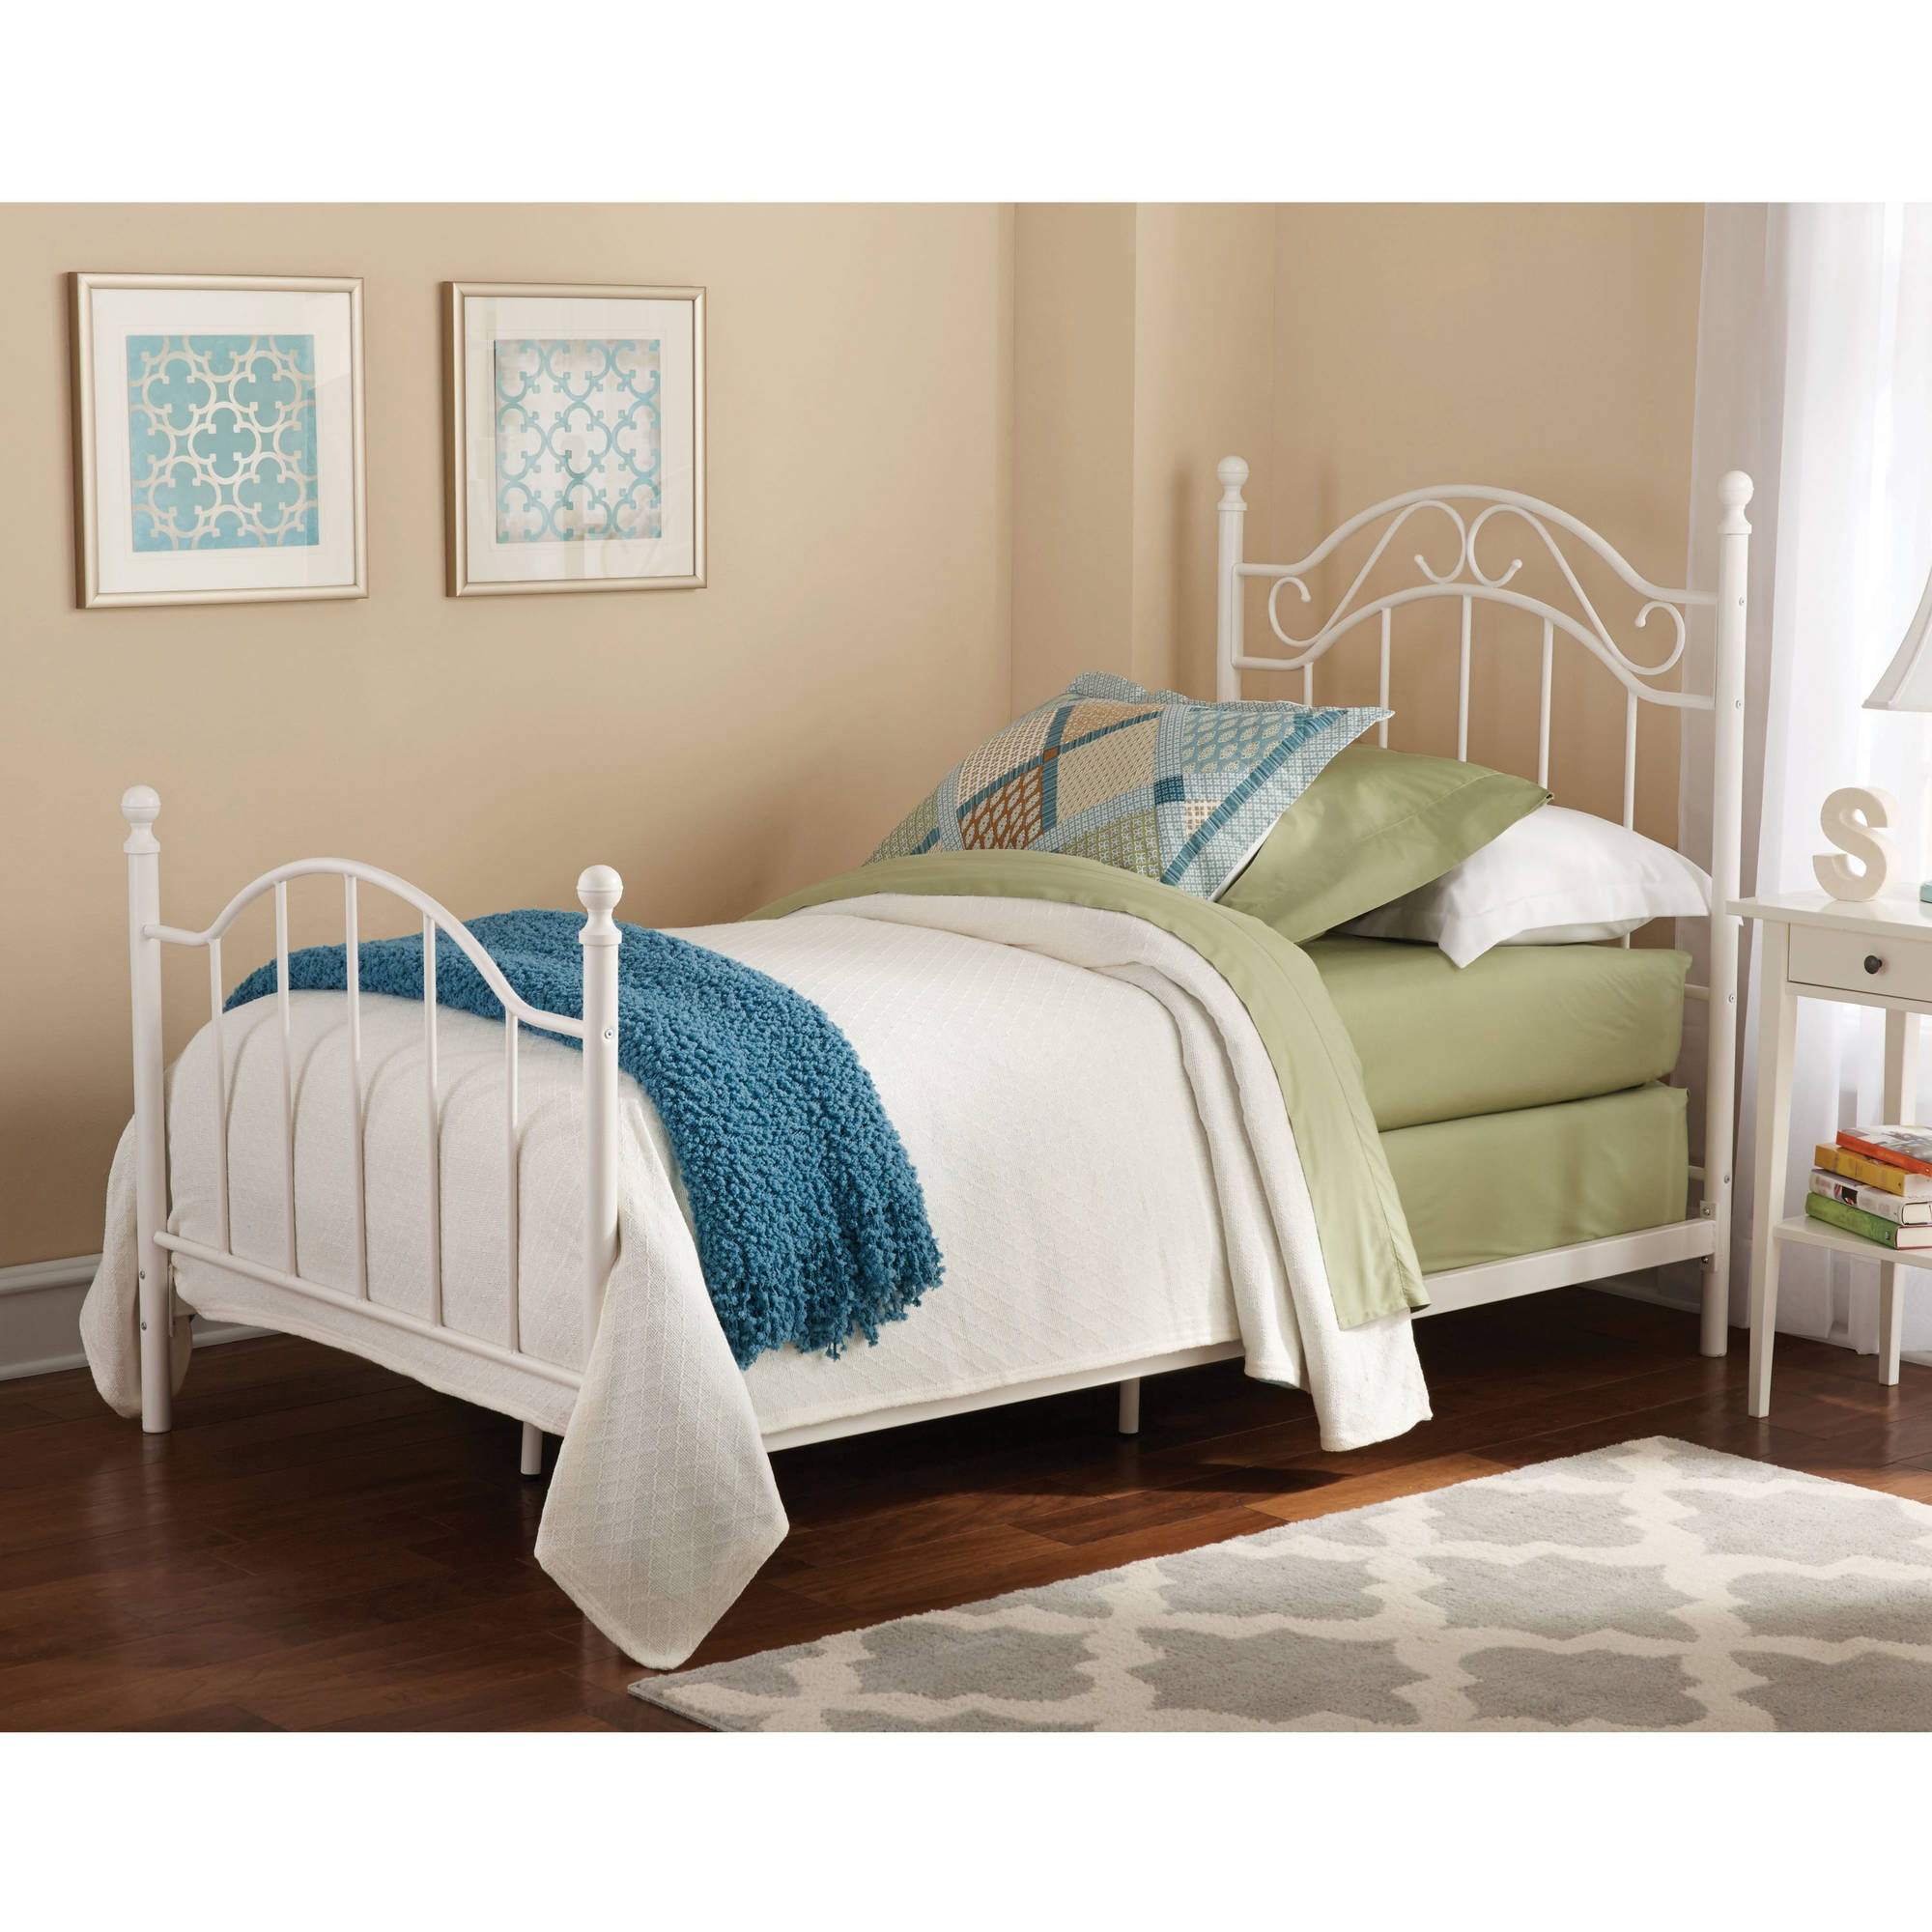 Girl Twin Size Bed Frames